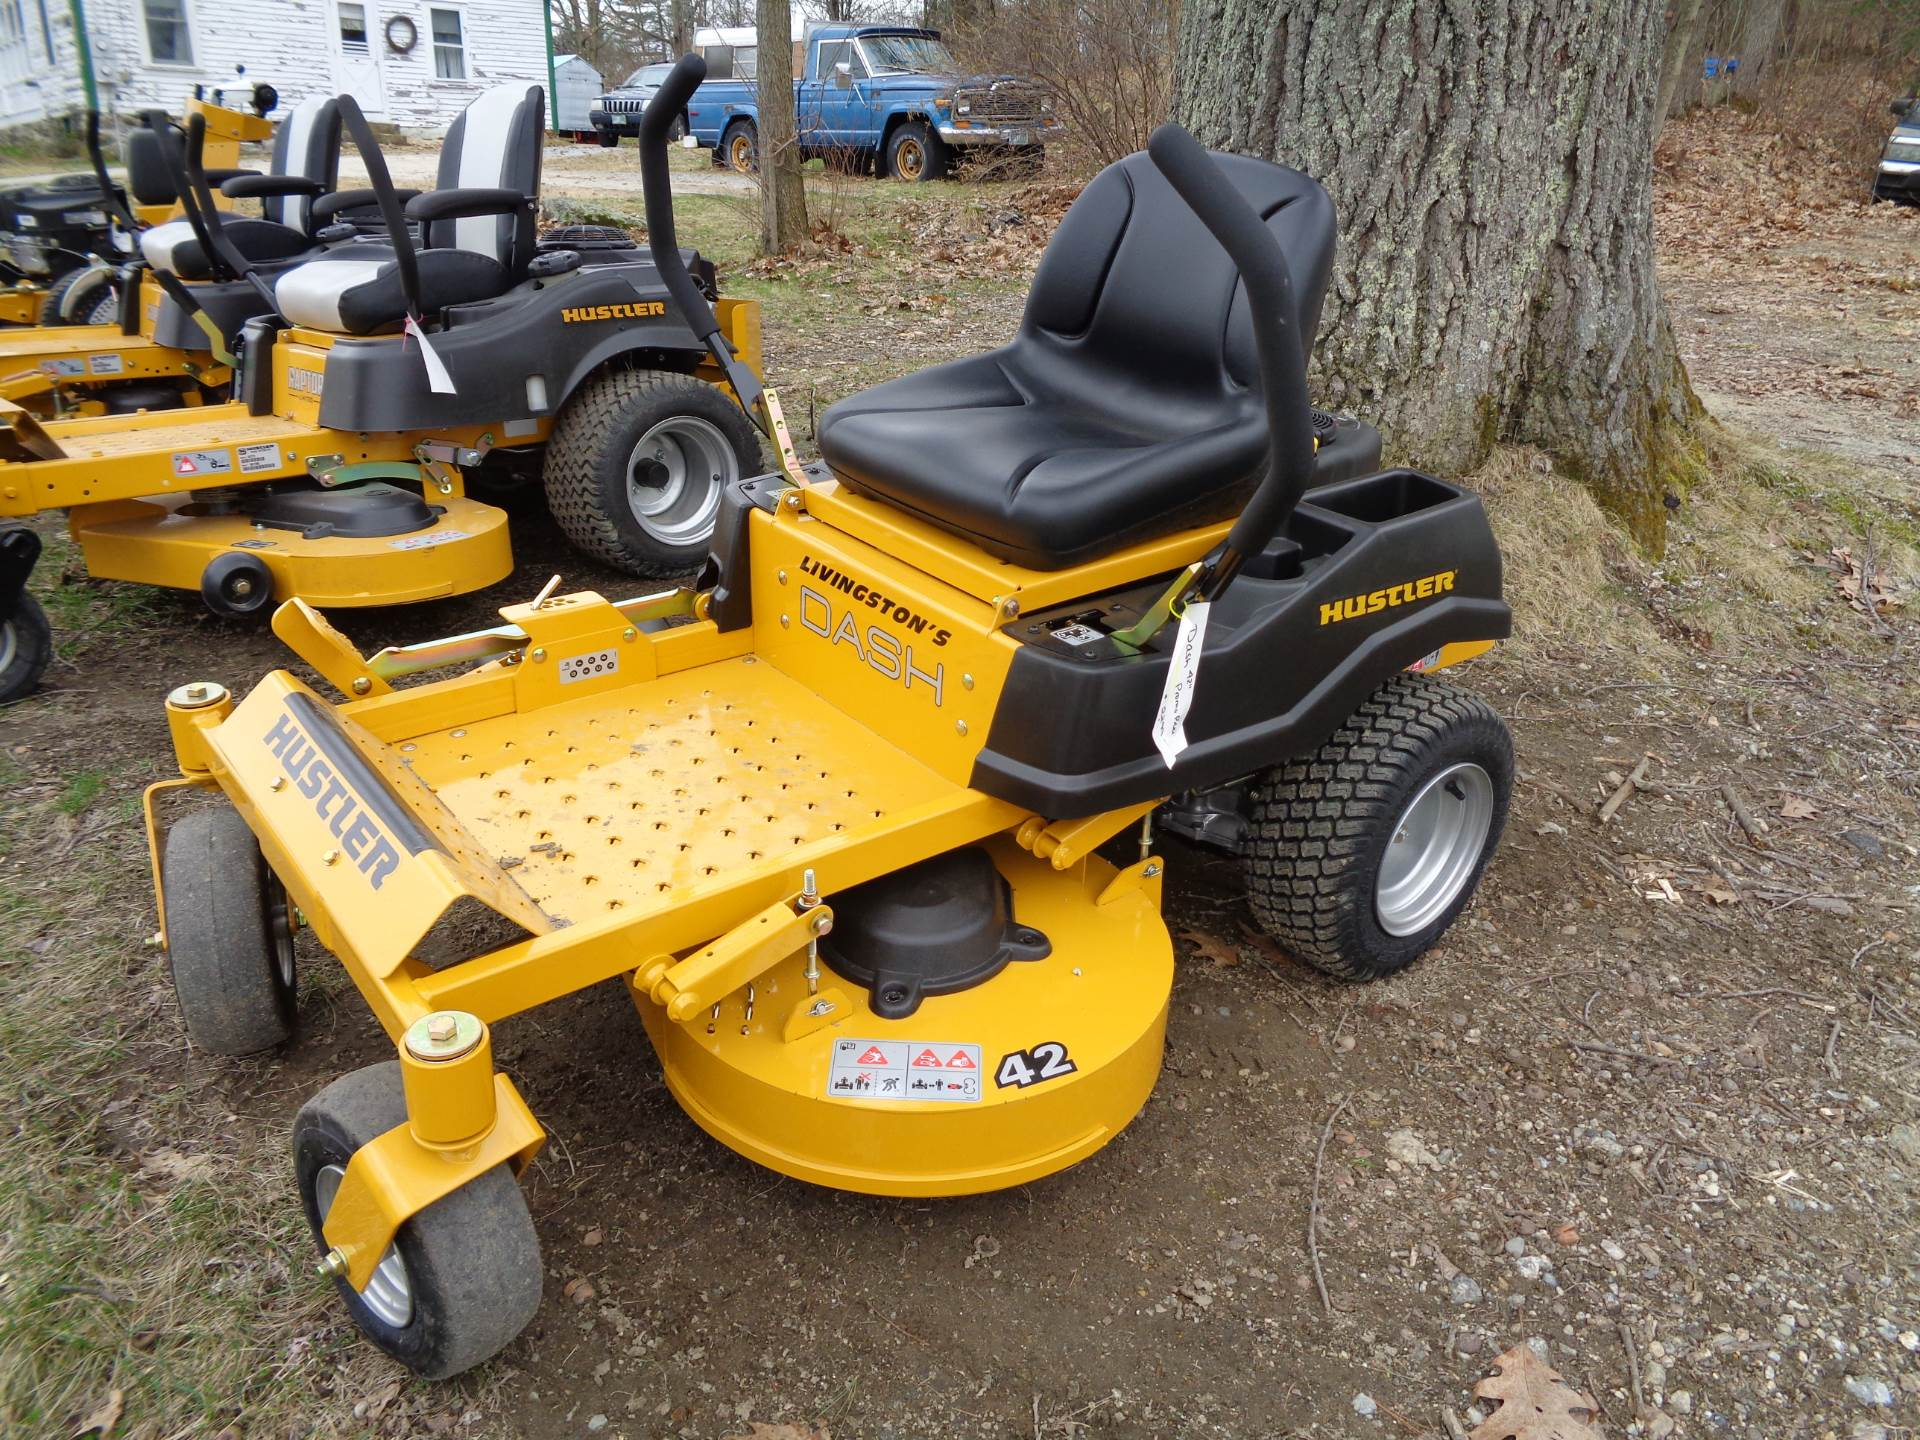 2019 Hustler Turf Equipment Dash 42 in. Briggs & Stratton PowerBuilt Zero Turn Mower in Hillsborough, New Hampshire - Photo 1